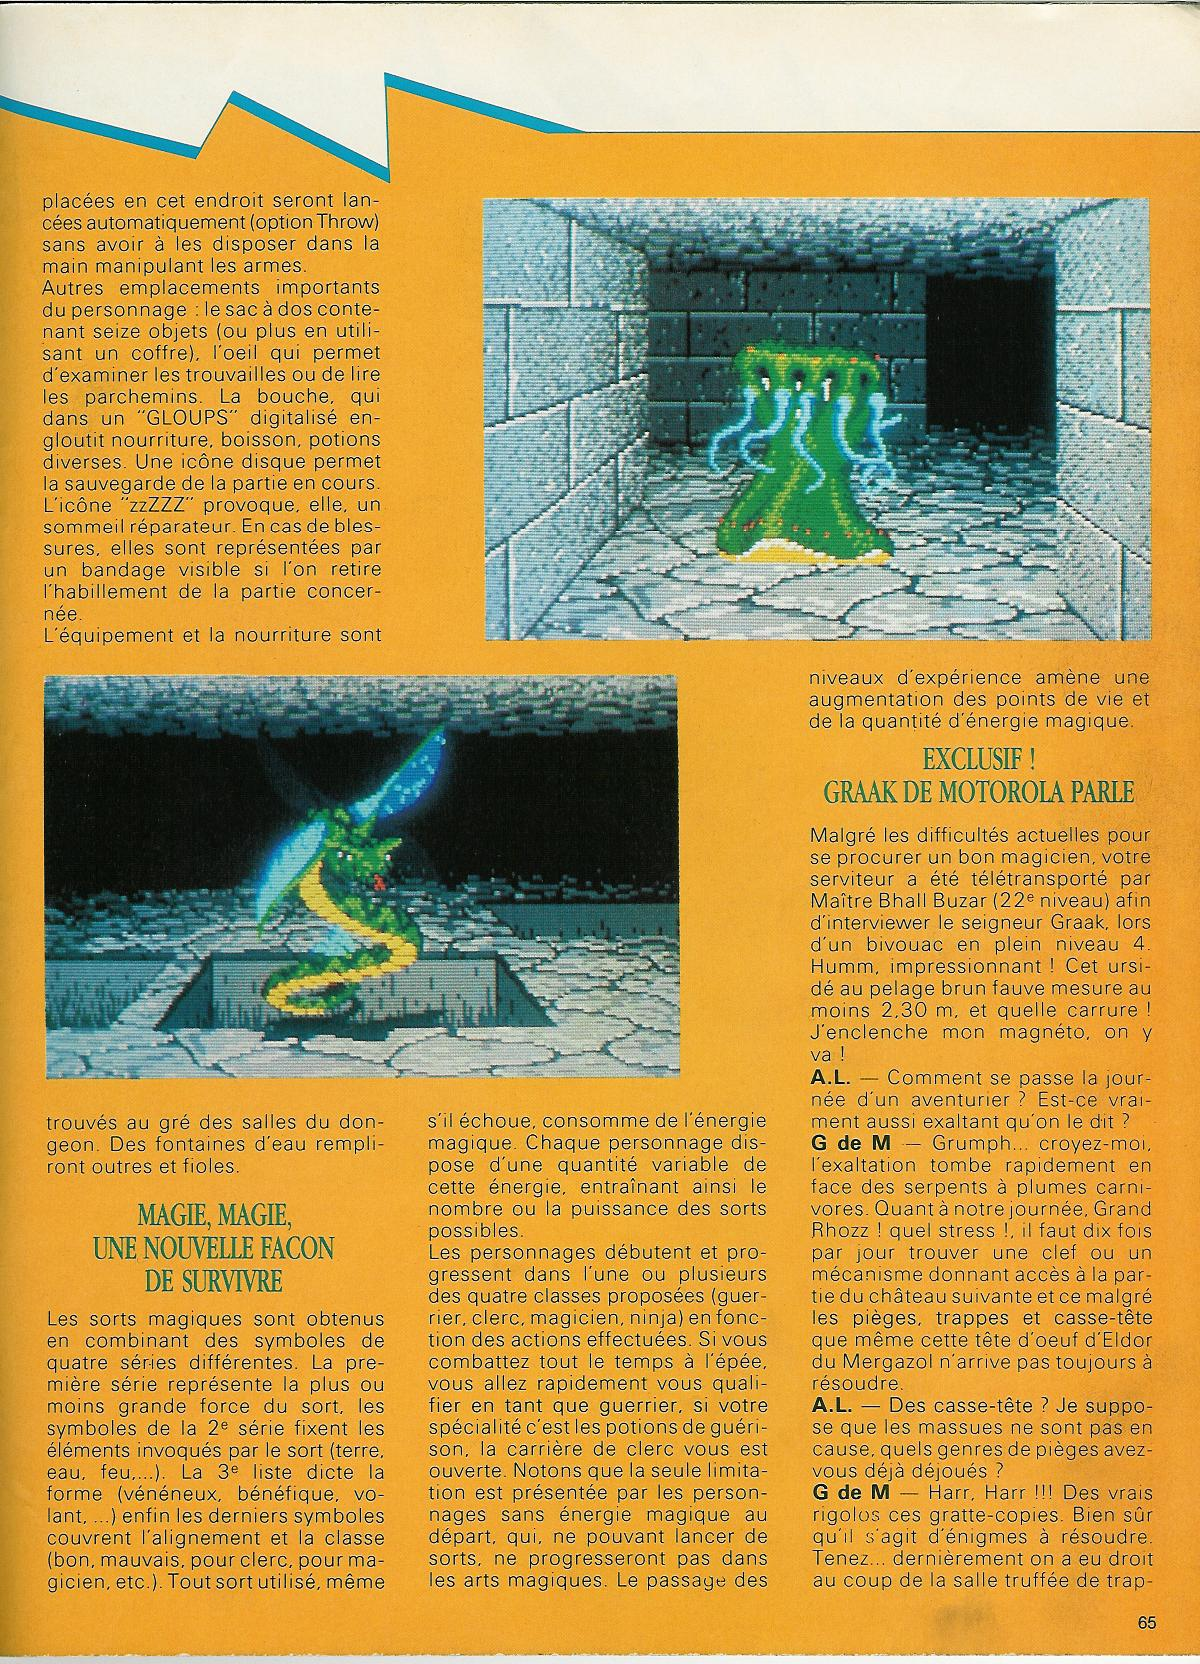 Dungeon Master for Atari ST Review published in French magazine 'Atari 1ST', Issue #8, April 1988, Page 65